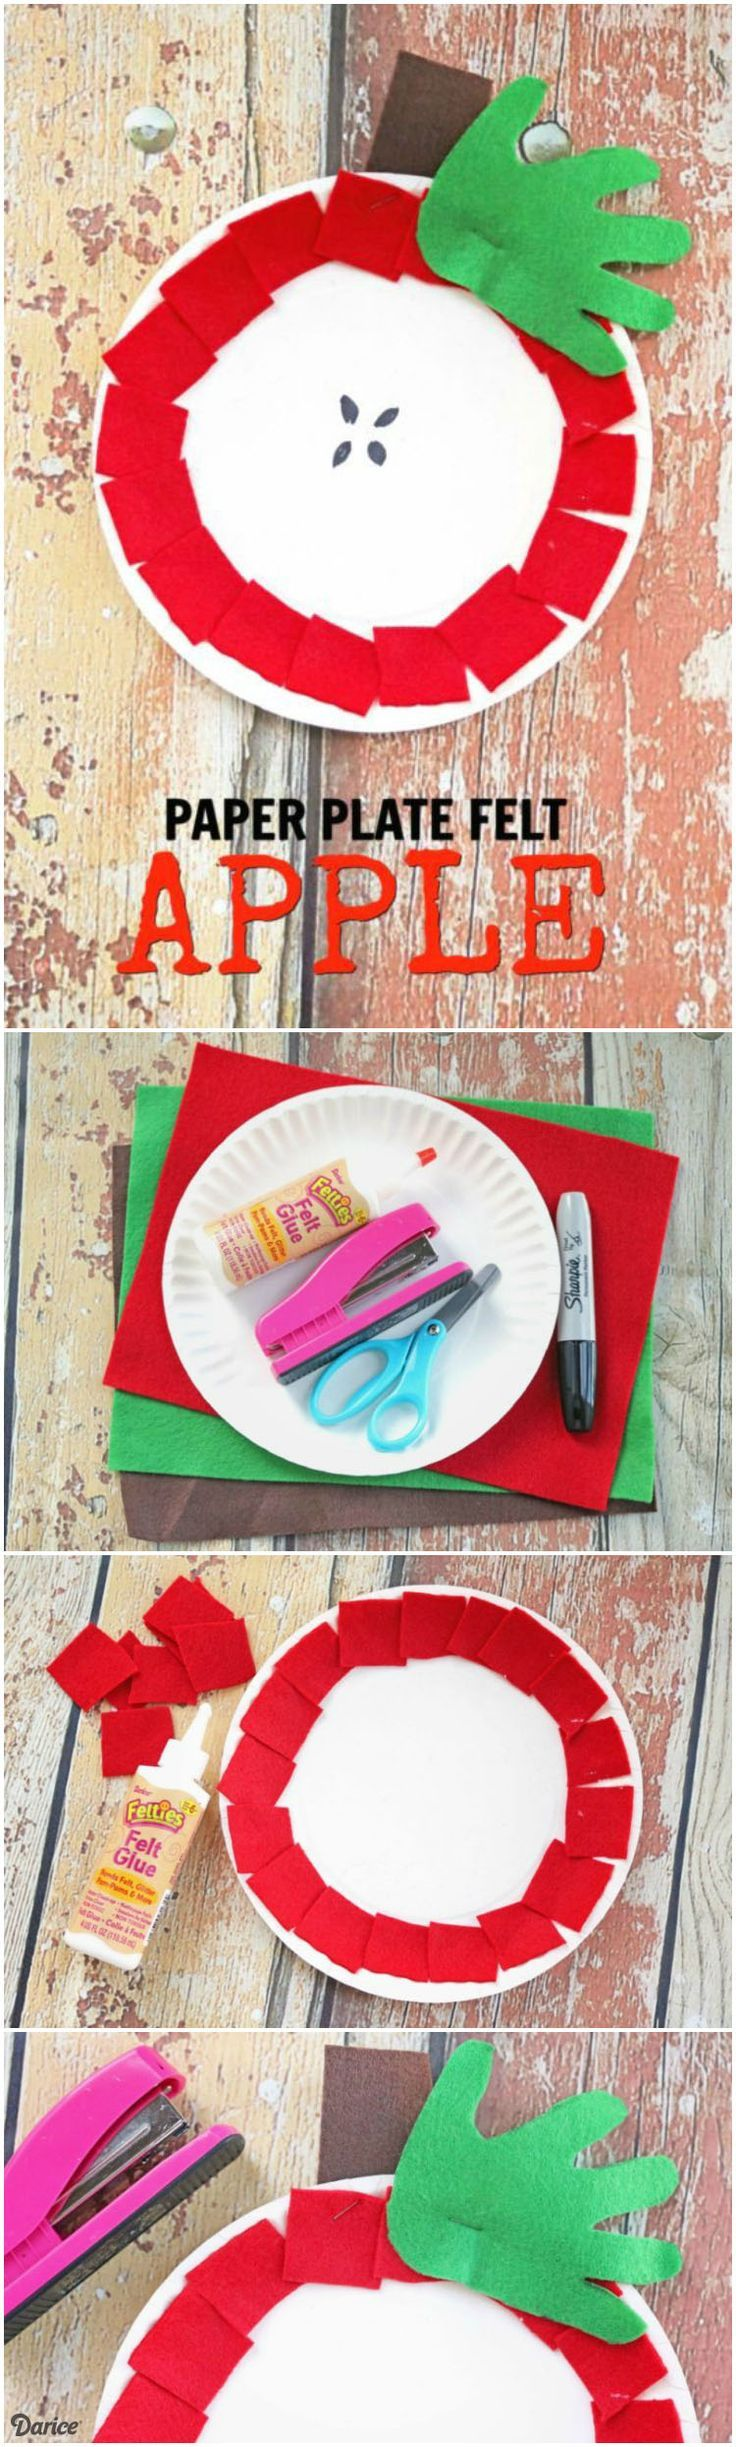 apple craft ideas apple craft for with felt and paper plates darice 1055